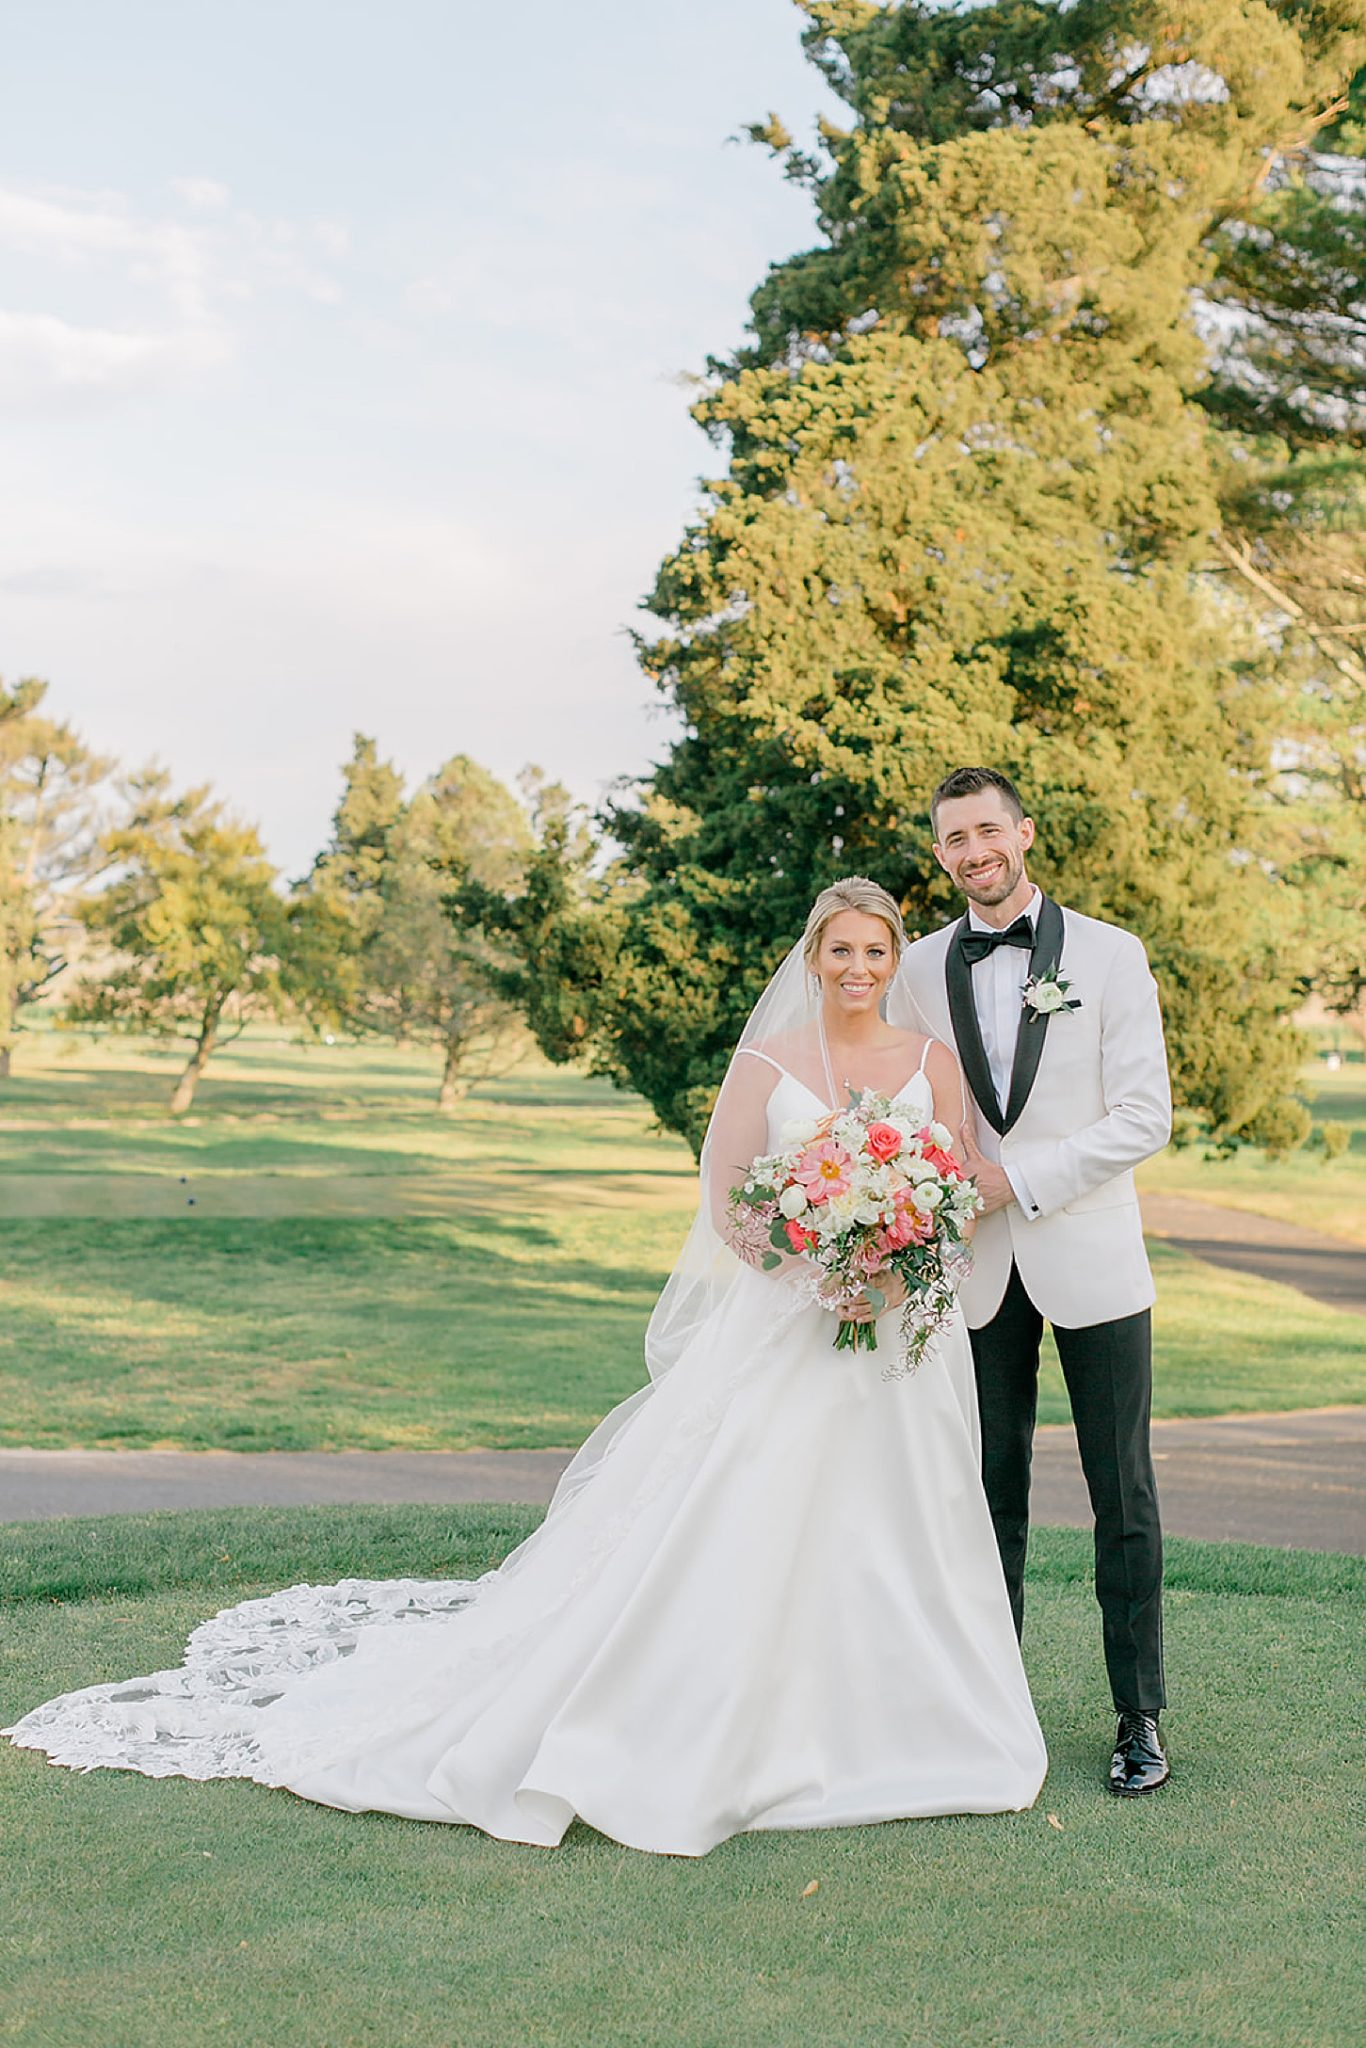 Linwood Country Club Summer Wedding Photography Studio by Magdalena Studios Jenn Kyle 0035 scaled